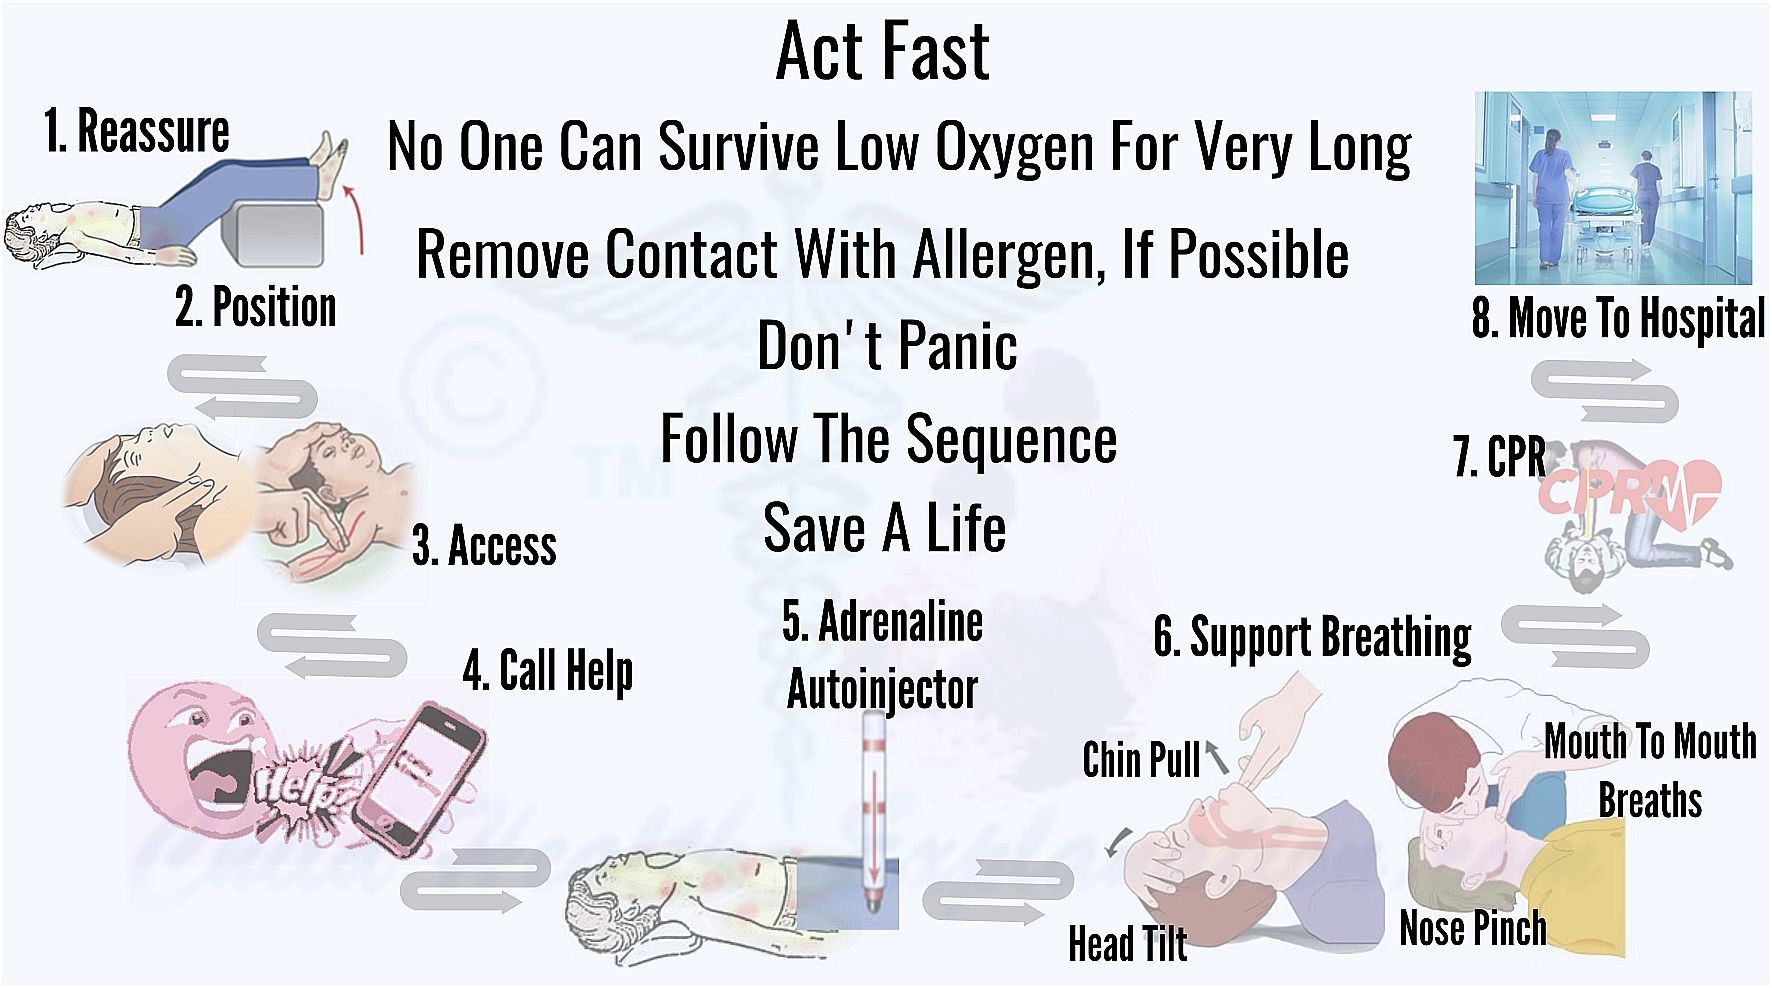 Efficient First Aid Field Management of This Life-Threatening Allergic Reaction Can Save a Life.